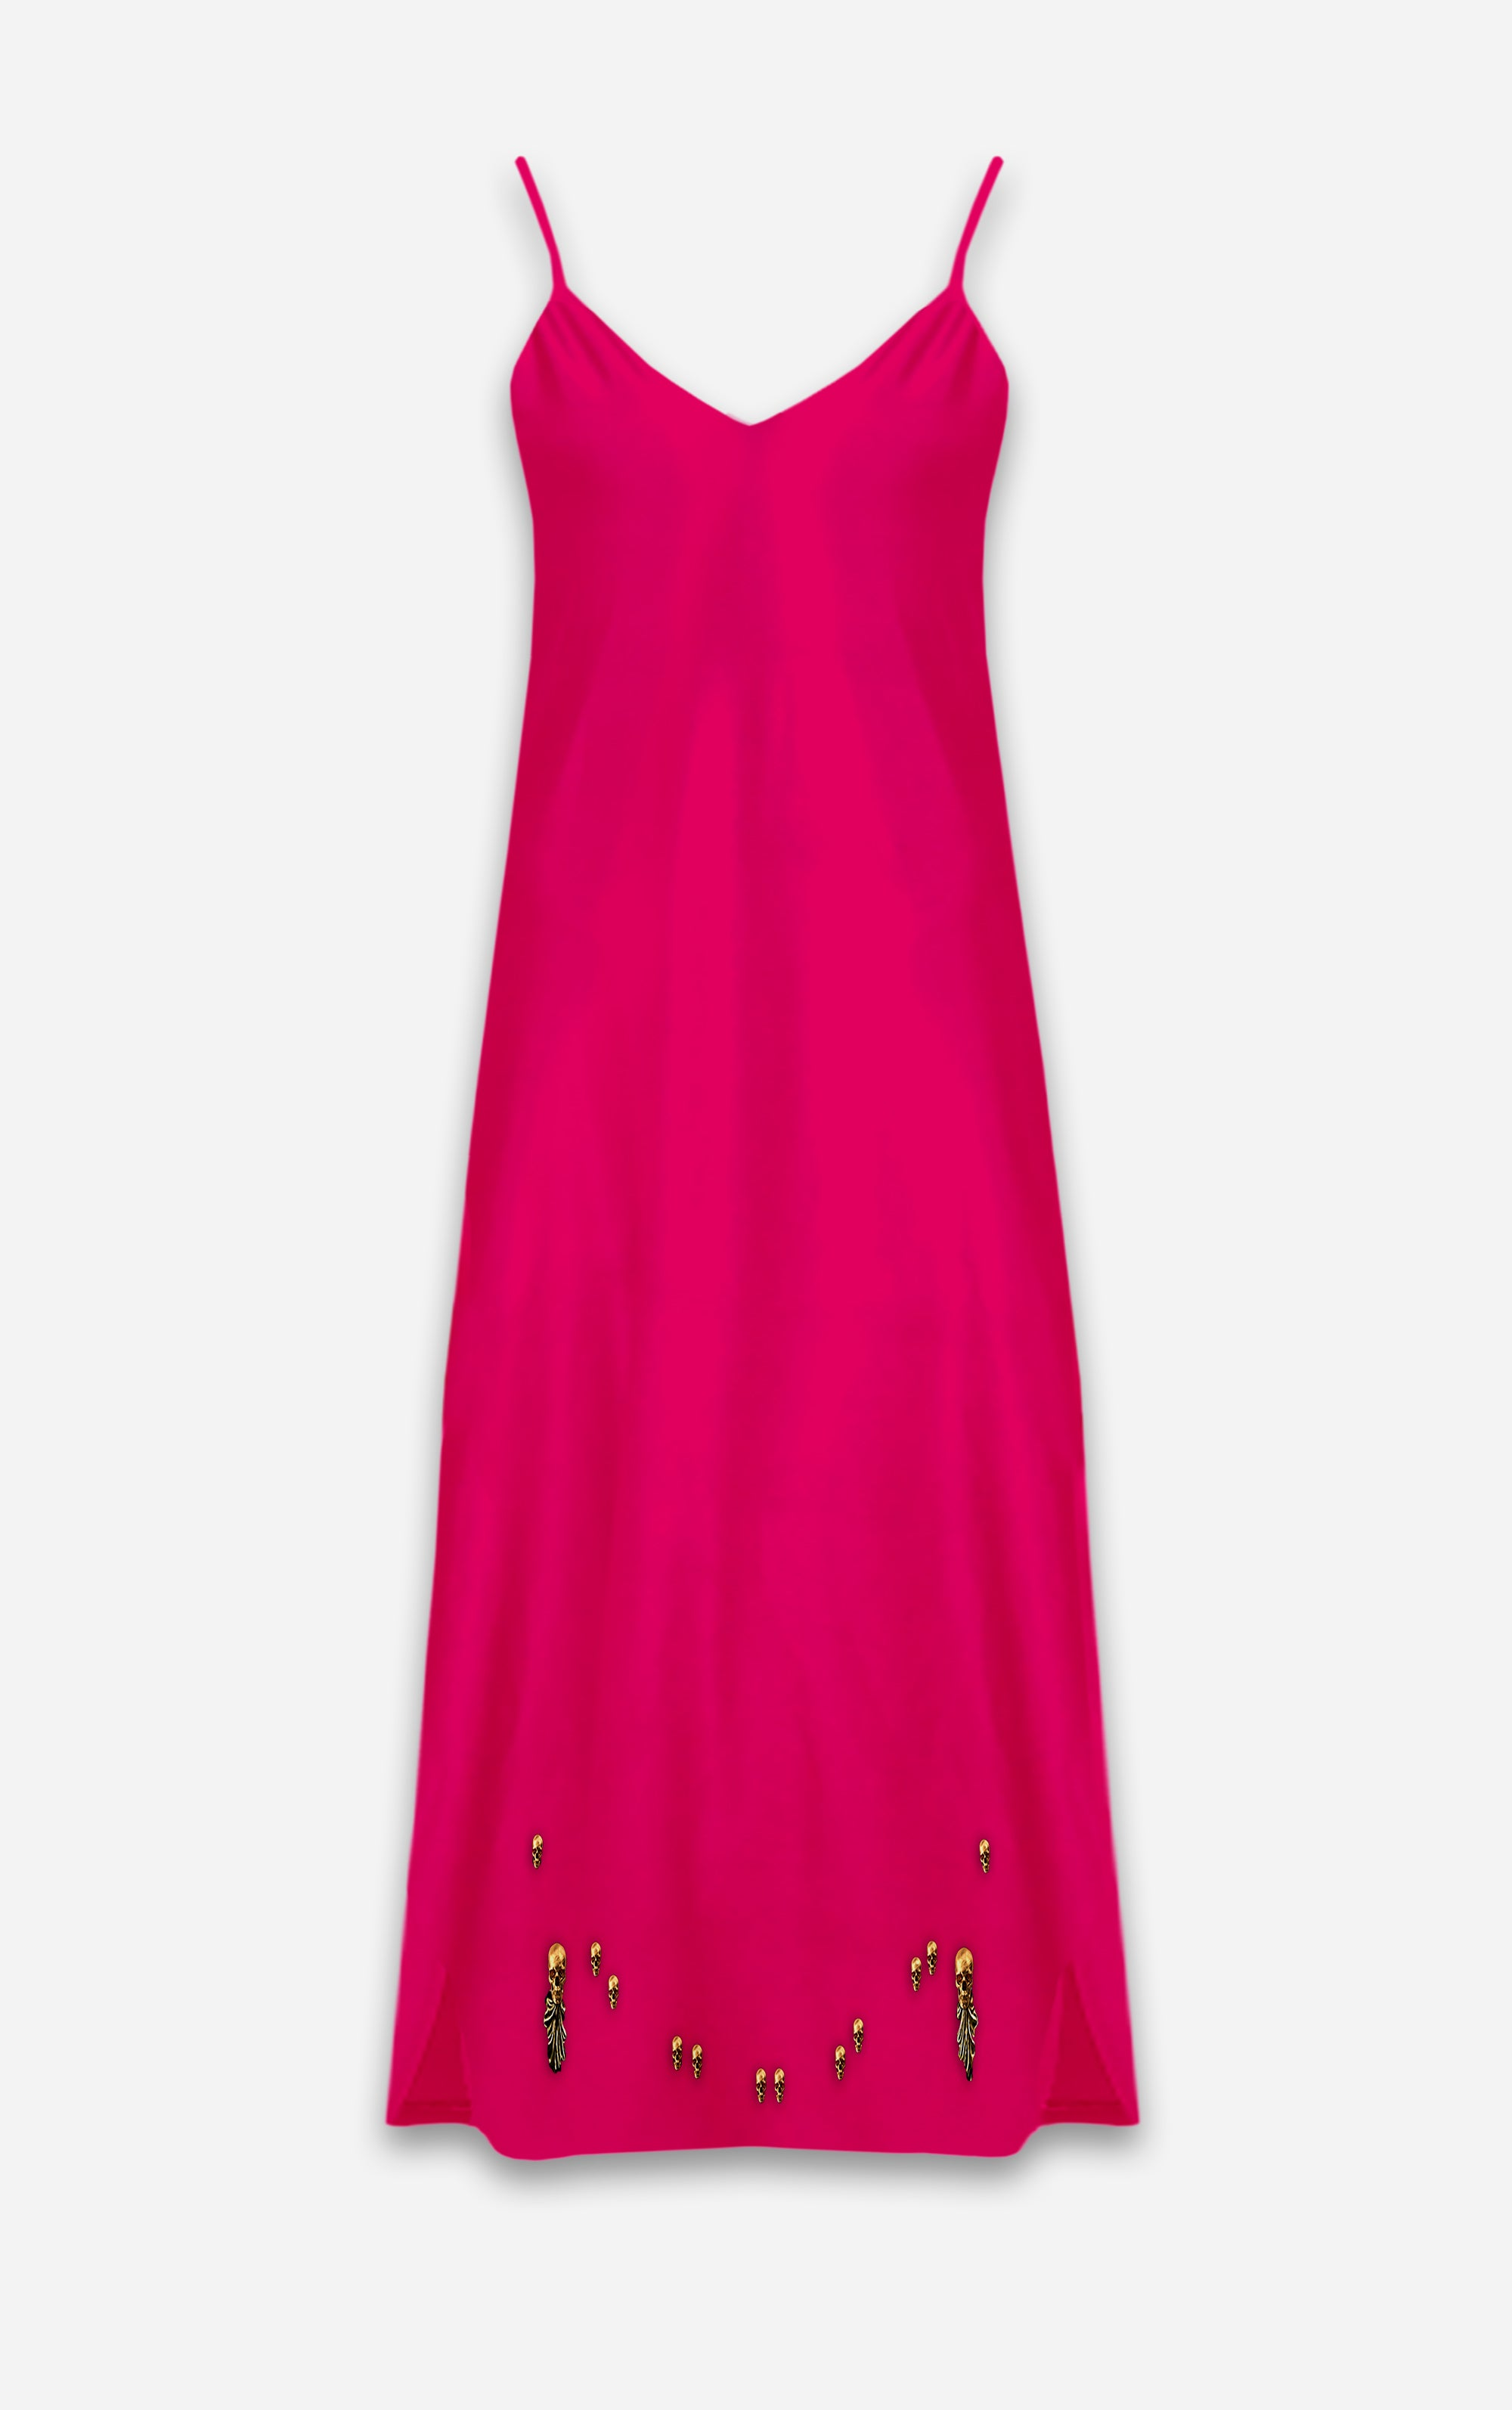 The Others- Baroque Skull- French Gothic V Neck Slip Dress in Bold Fuchsia | Le Leanian™